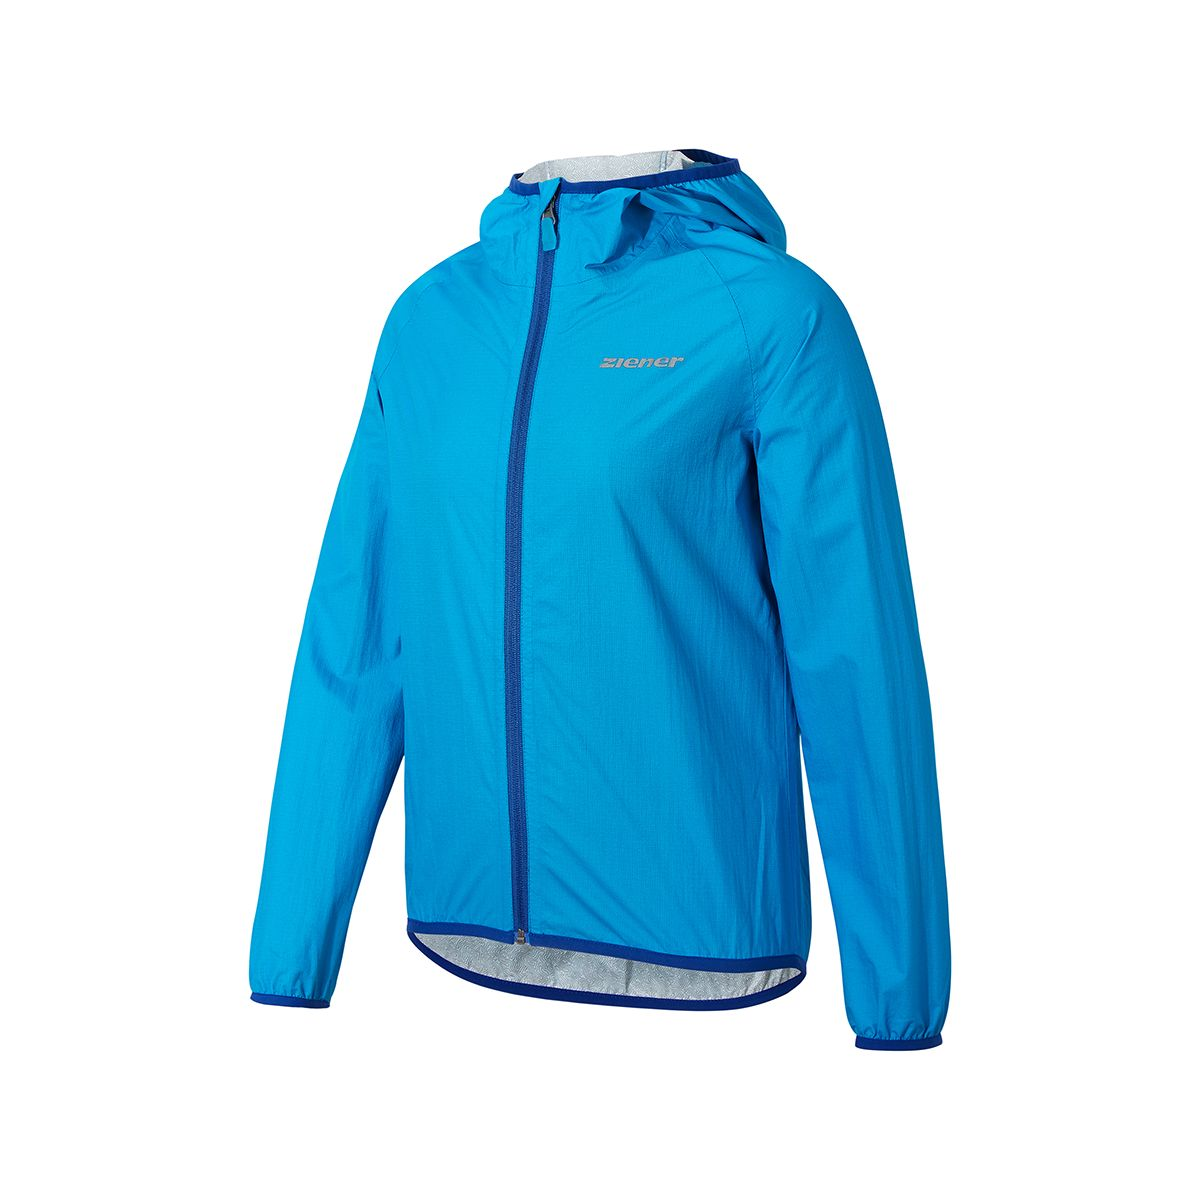 CHIMA waterproof jacket for kids